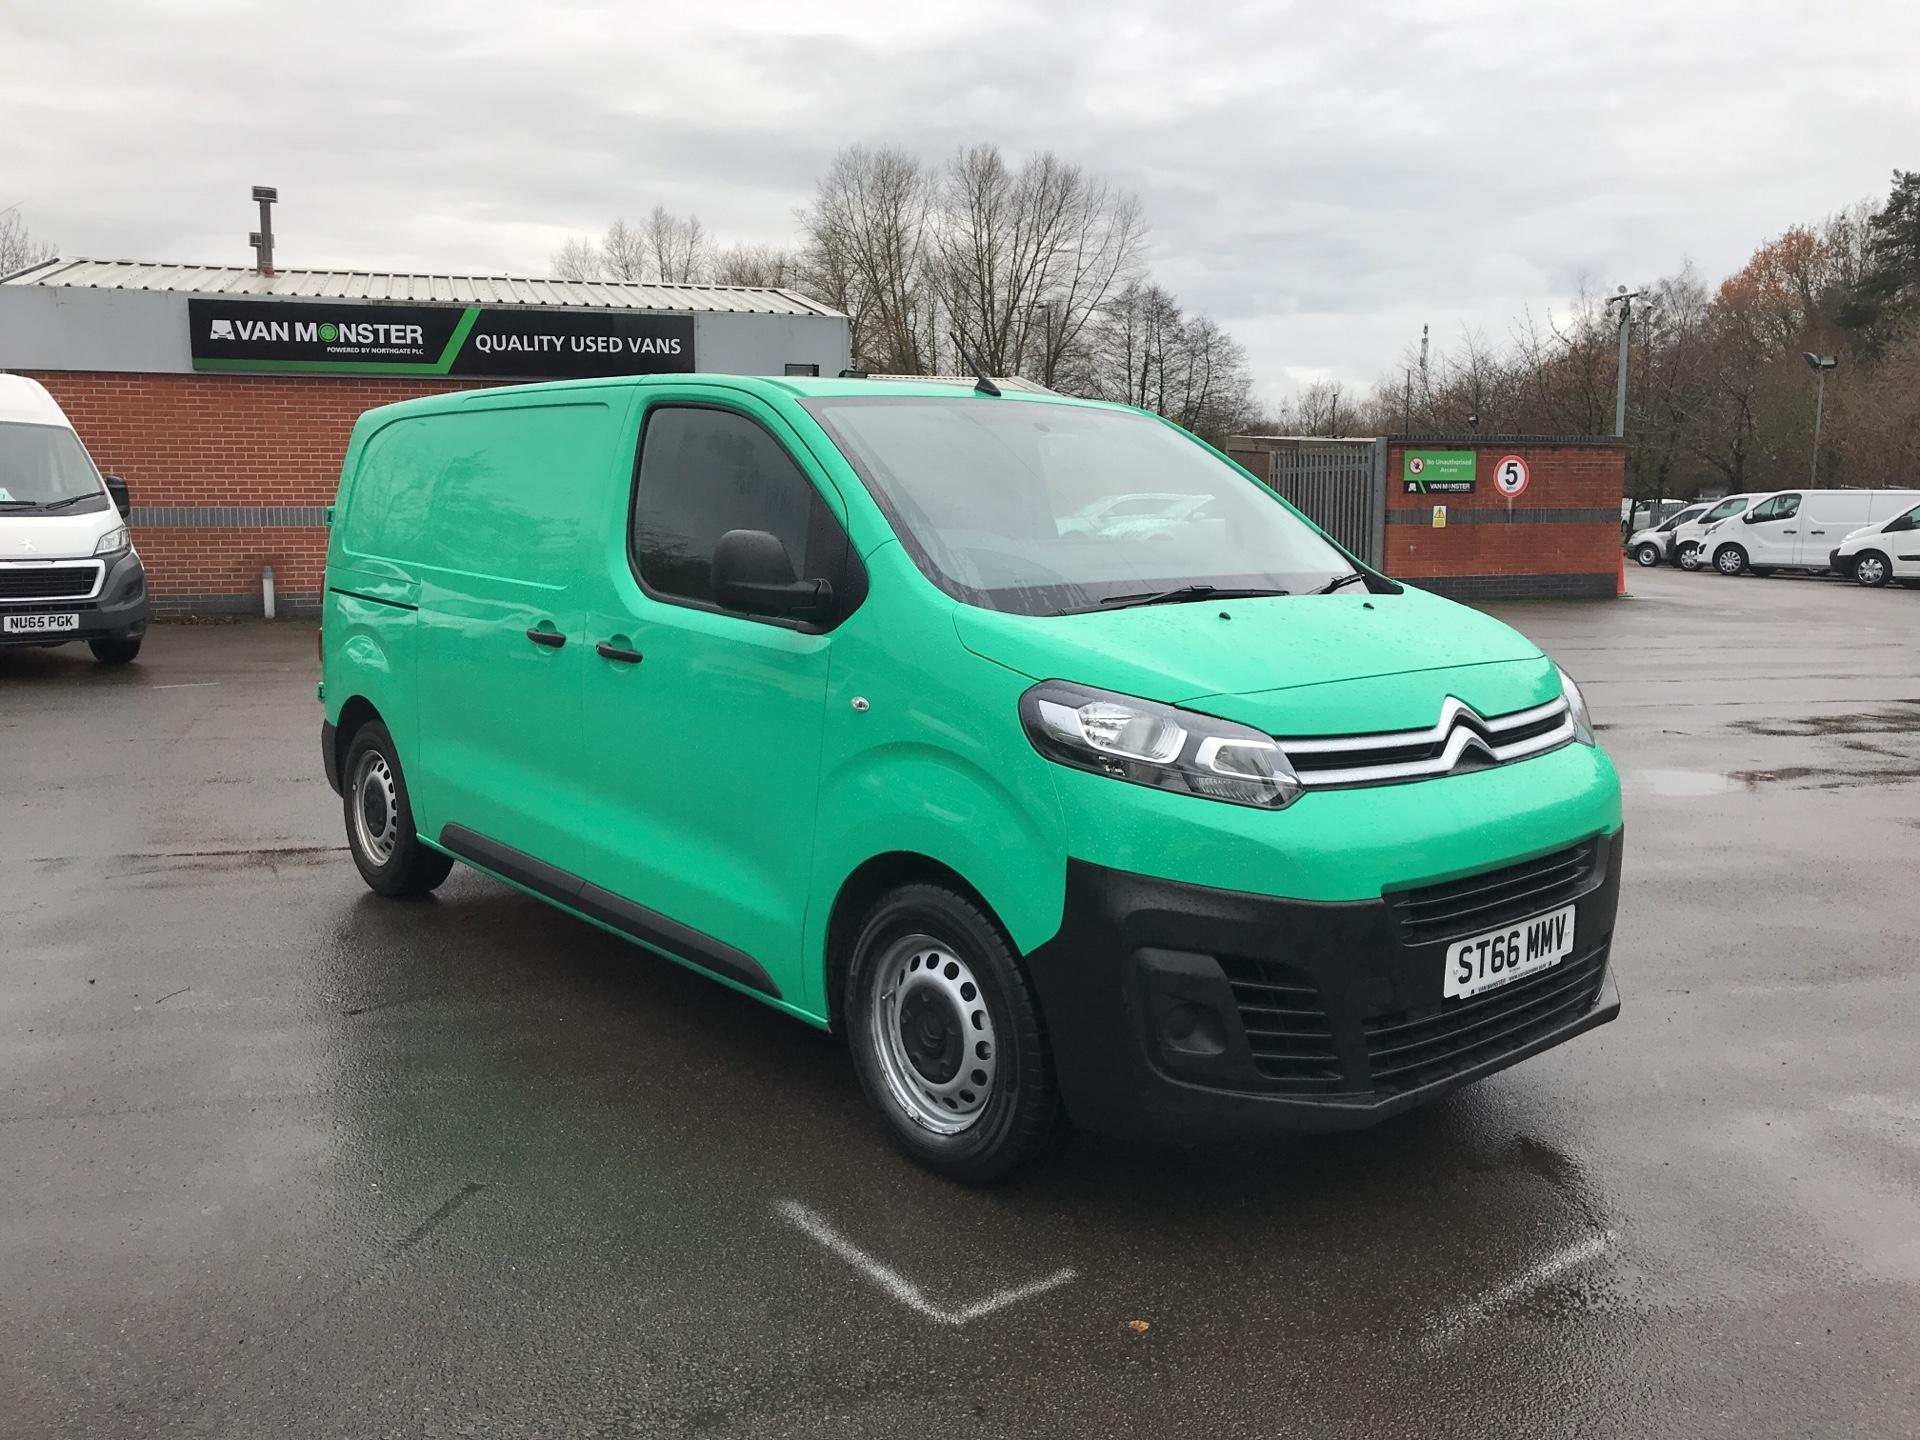 2016 Citroen Dispatch M DIESEL 1000 1.6 BLUEHDI 115 VAN X EURO 6 *VALUE RANGE VEHICLE - CONDITION REFLECTED IN PRICE* (ST66MMV)